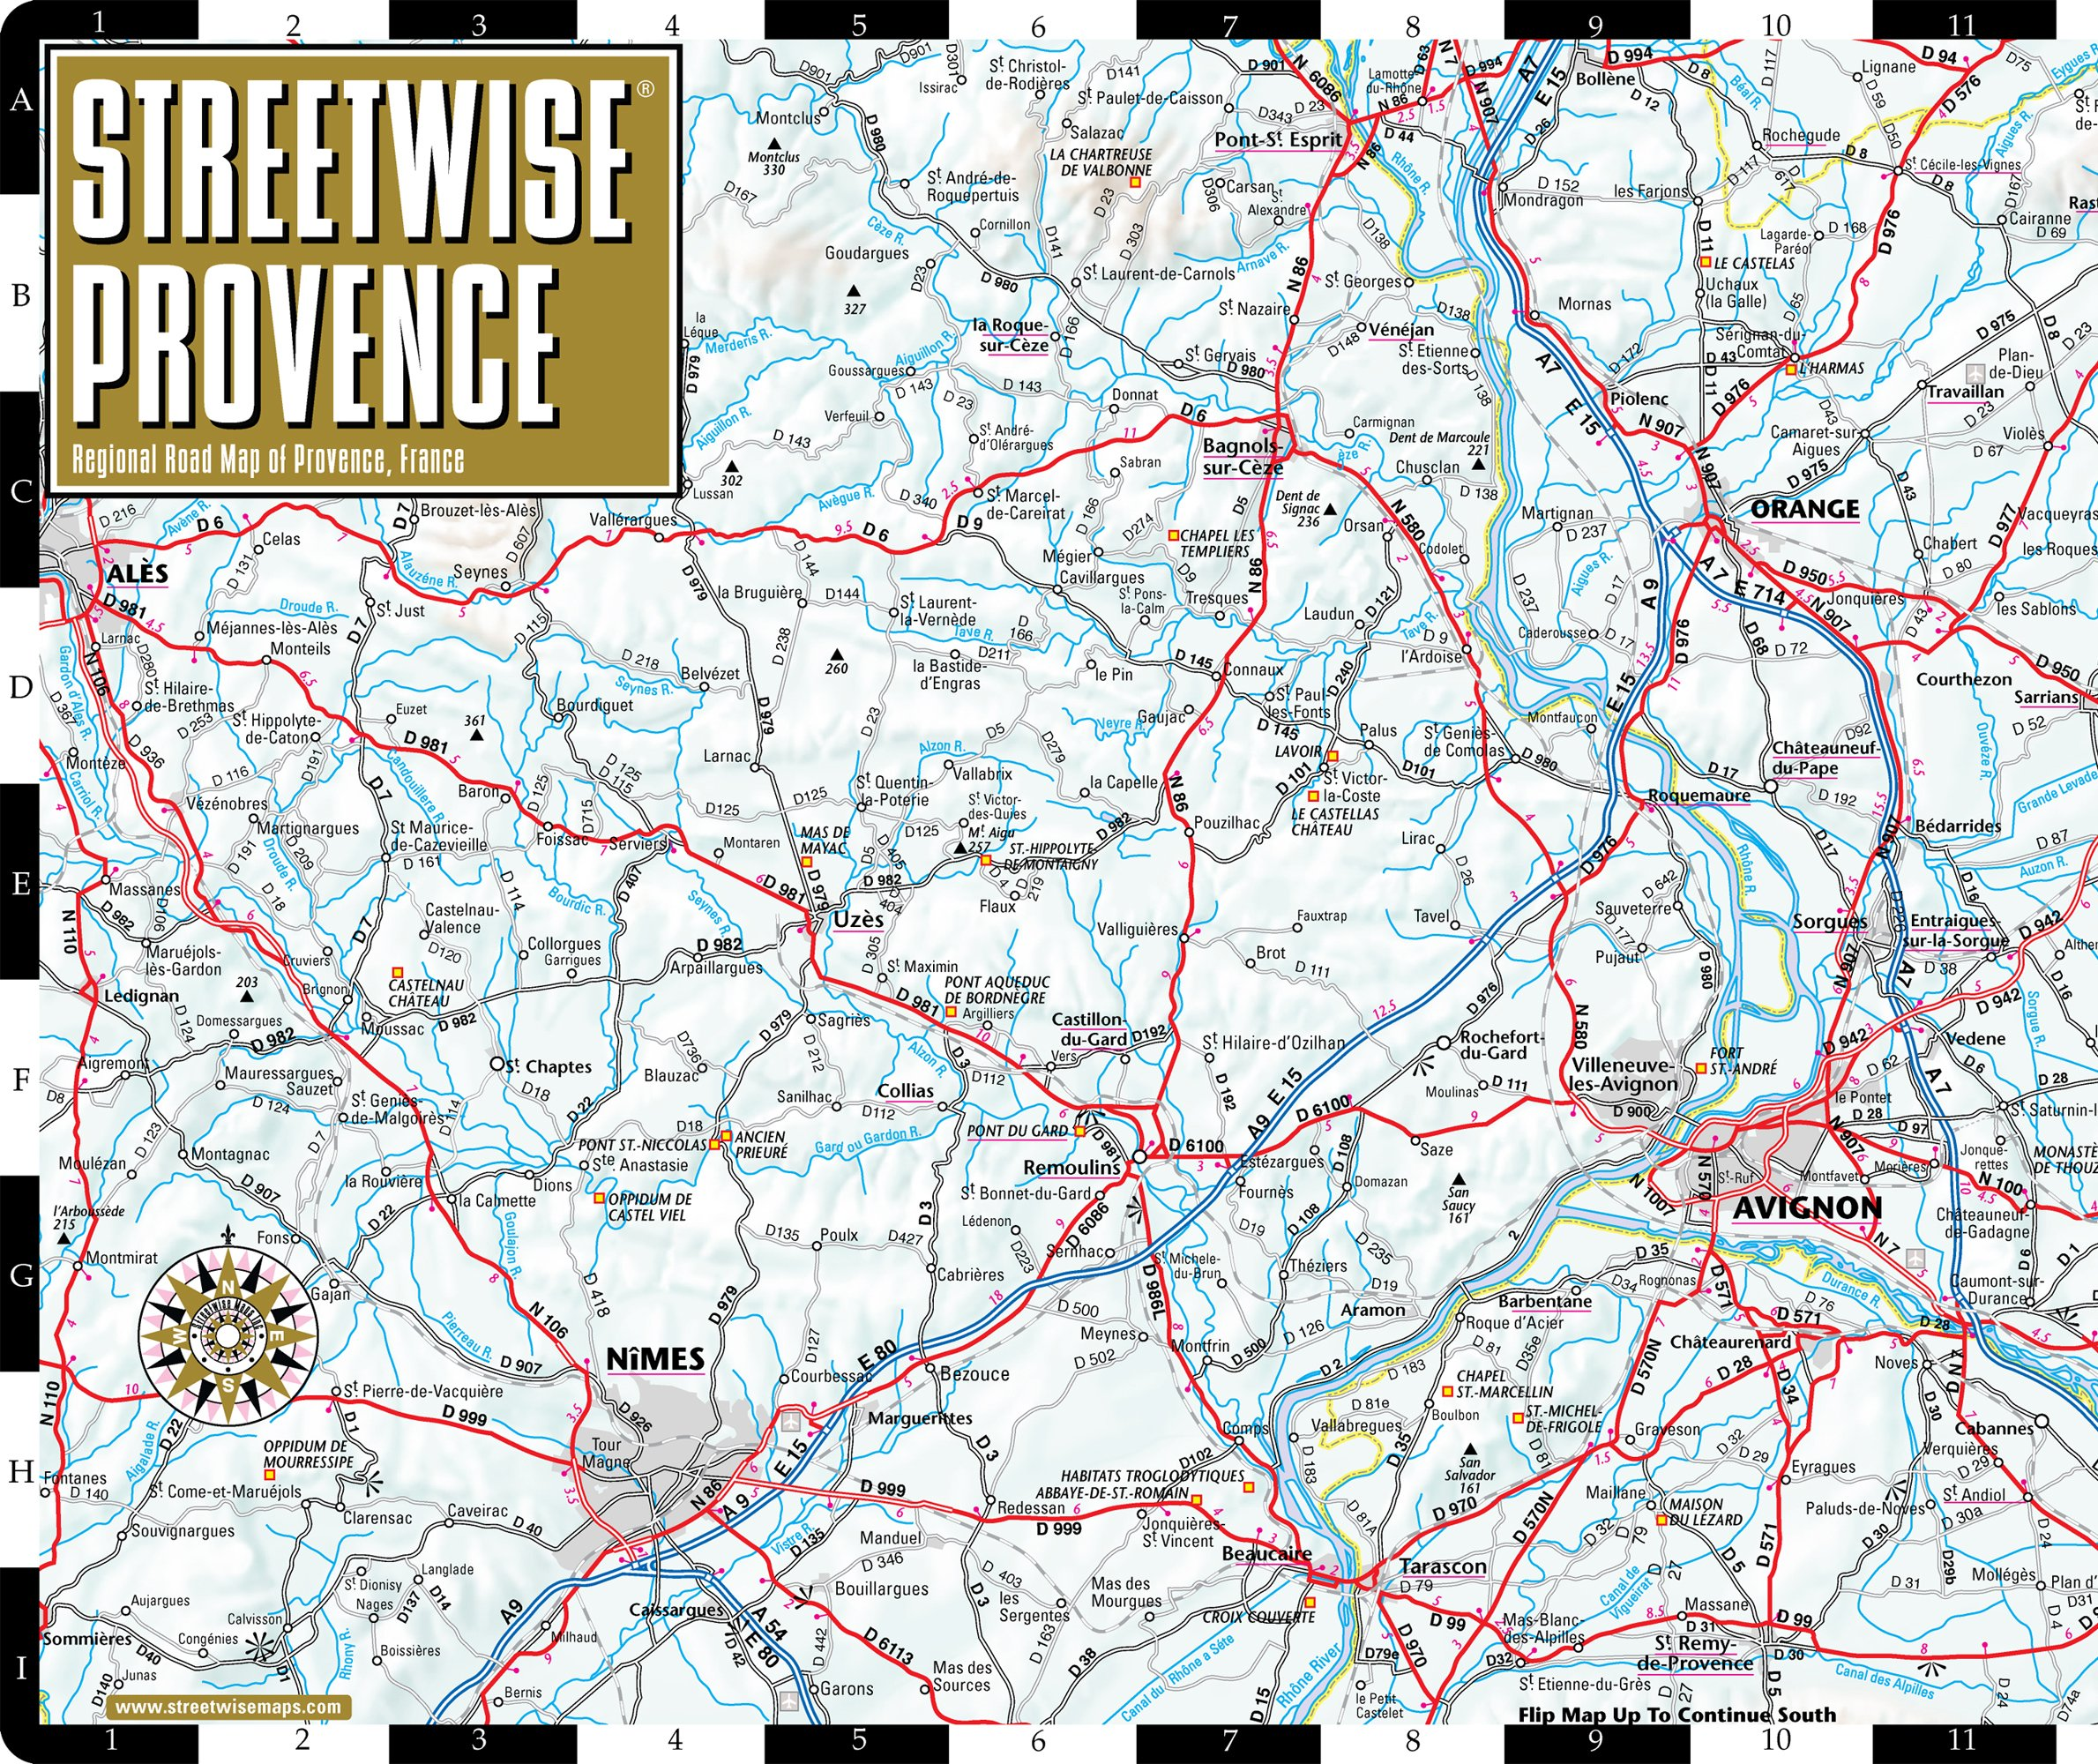 Provence Map Of France.Streetwise Provence Map Laminated Regional Road Map Of Provence